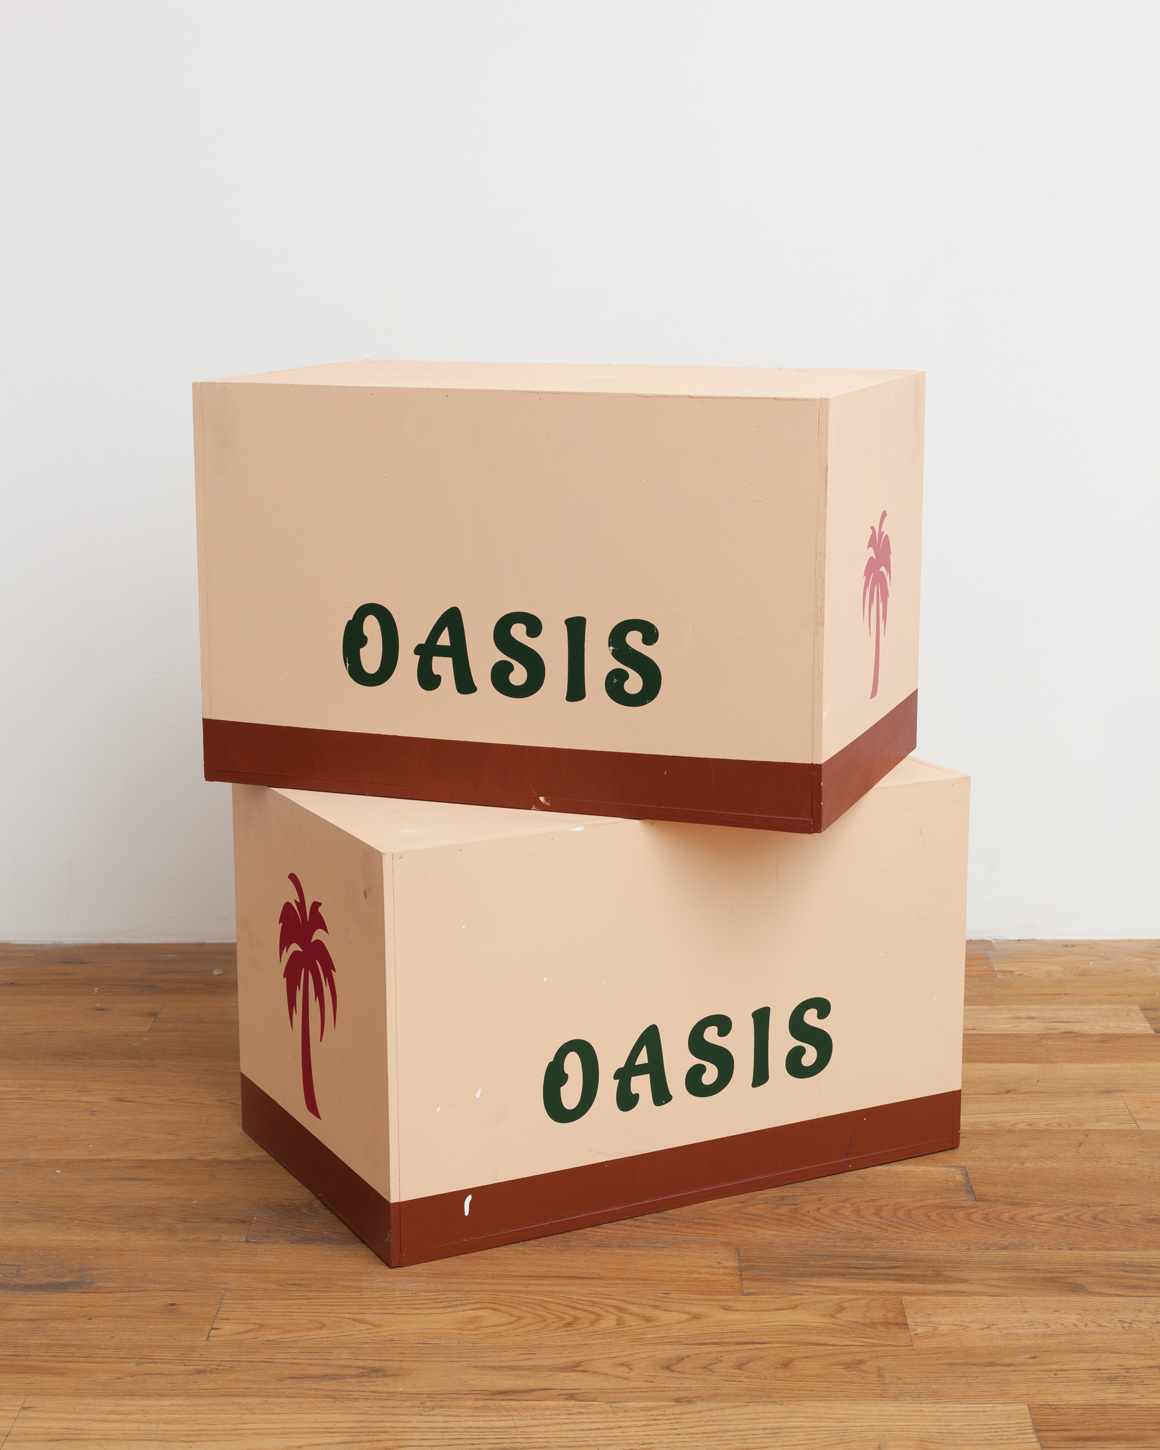 <p><em>Oasis Boxes</em><a class='inquire' href='mailto:info@gildargallery.com?subject=Artwork Inquiry ASTA0009&body=I am interested in finding out more about Oasis Boxes by Adam Stamp'>Inquire</a></p>